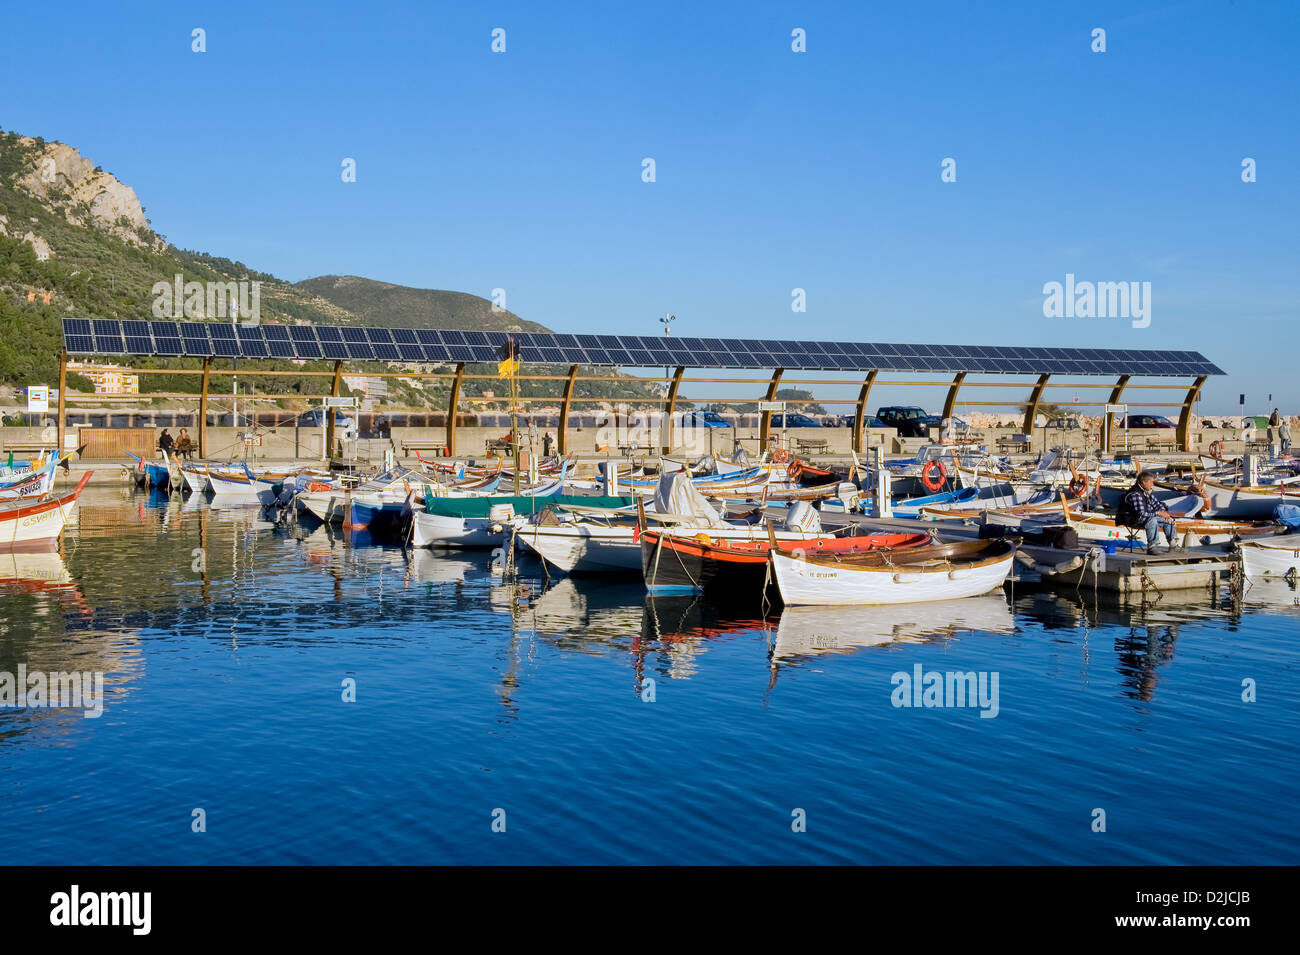 Finale Ligure, Italy, solar plant in the Port of Finale Ligure - Stock Image